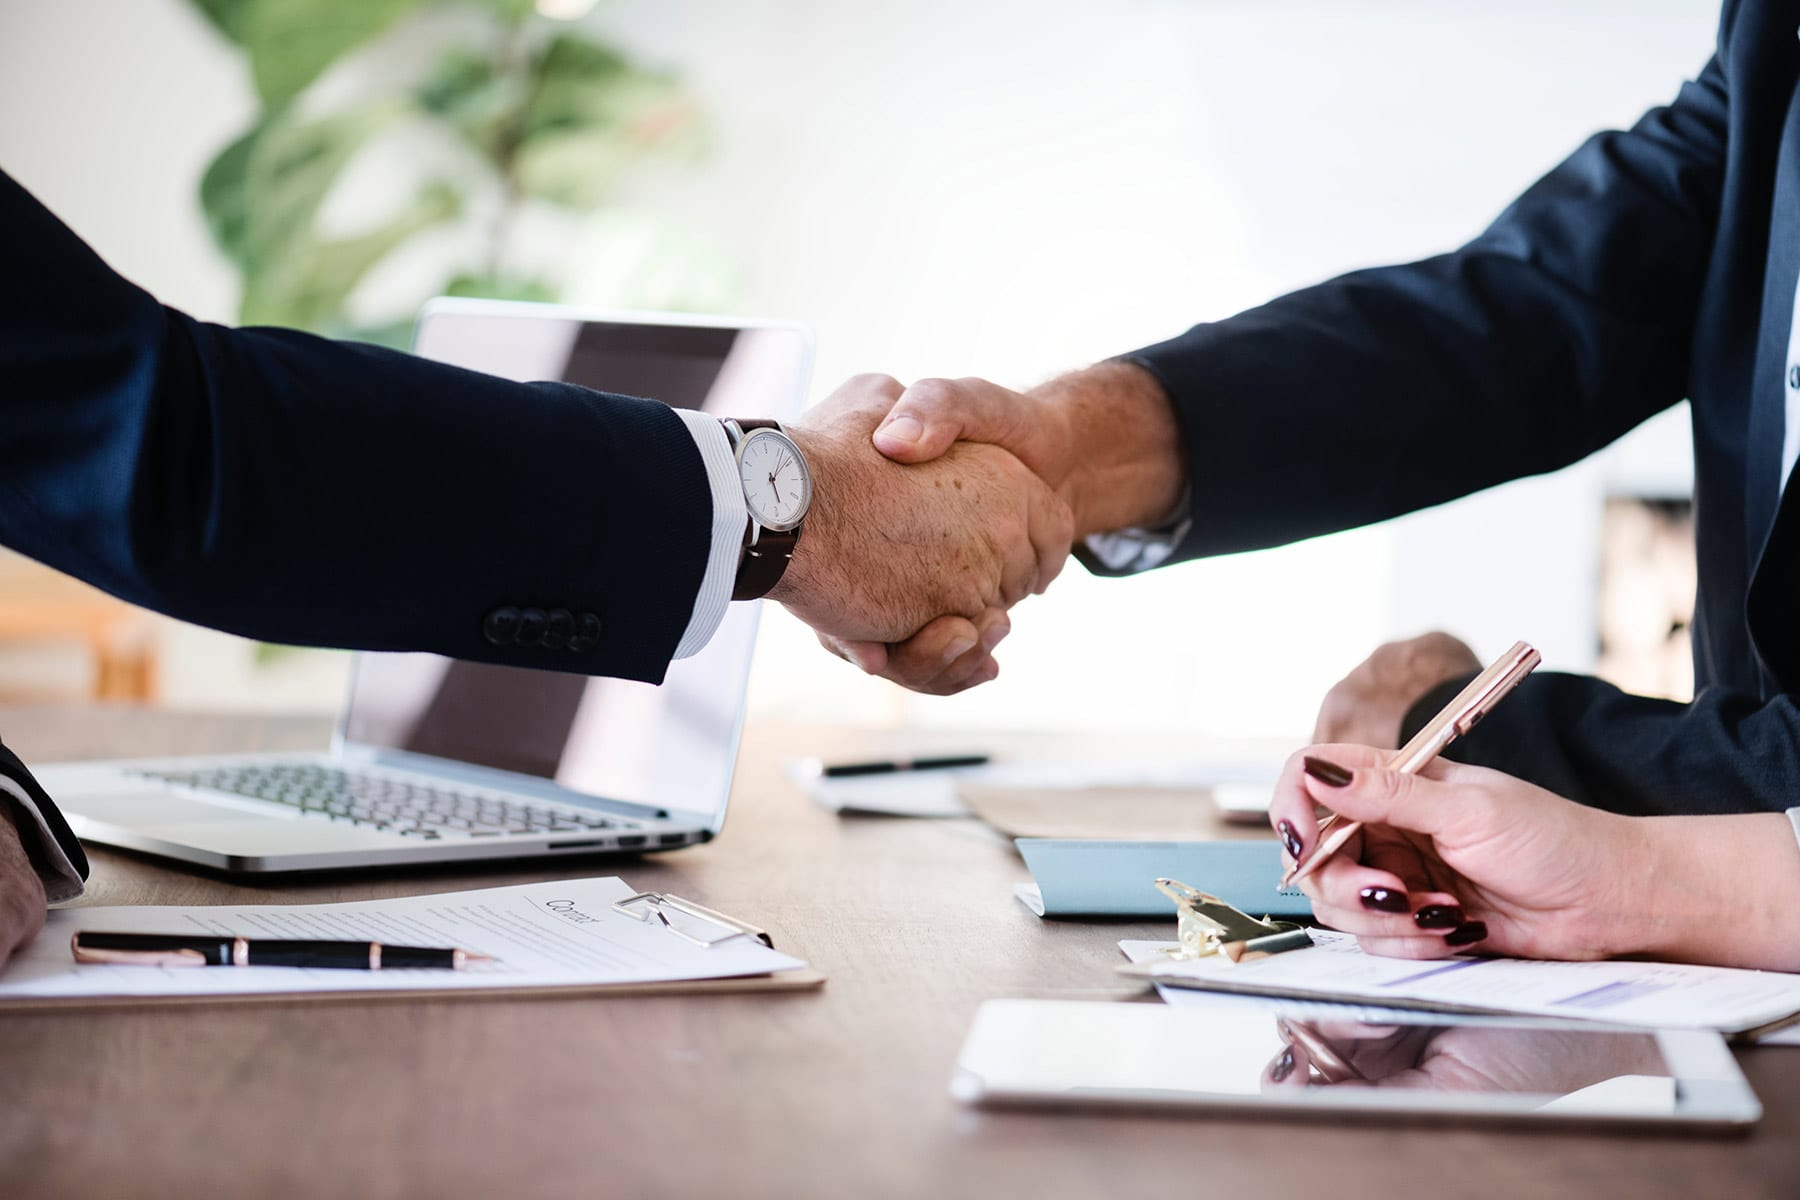 Negotiation of offers and contracts between GA real estate agents on behalf of the clients they represent.